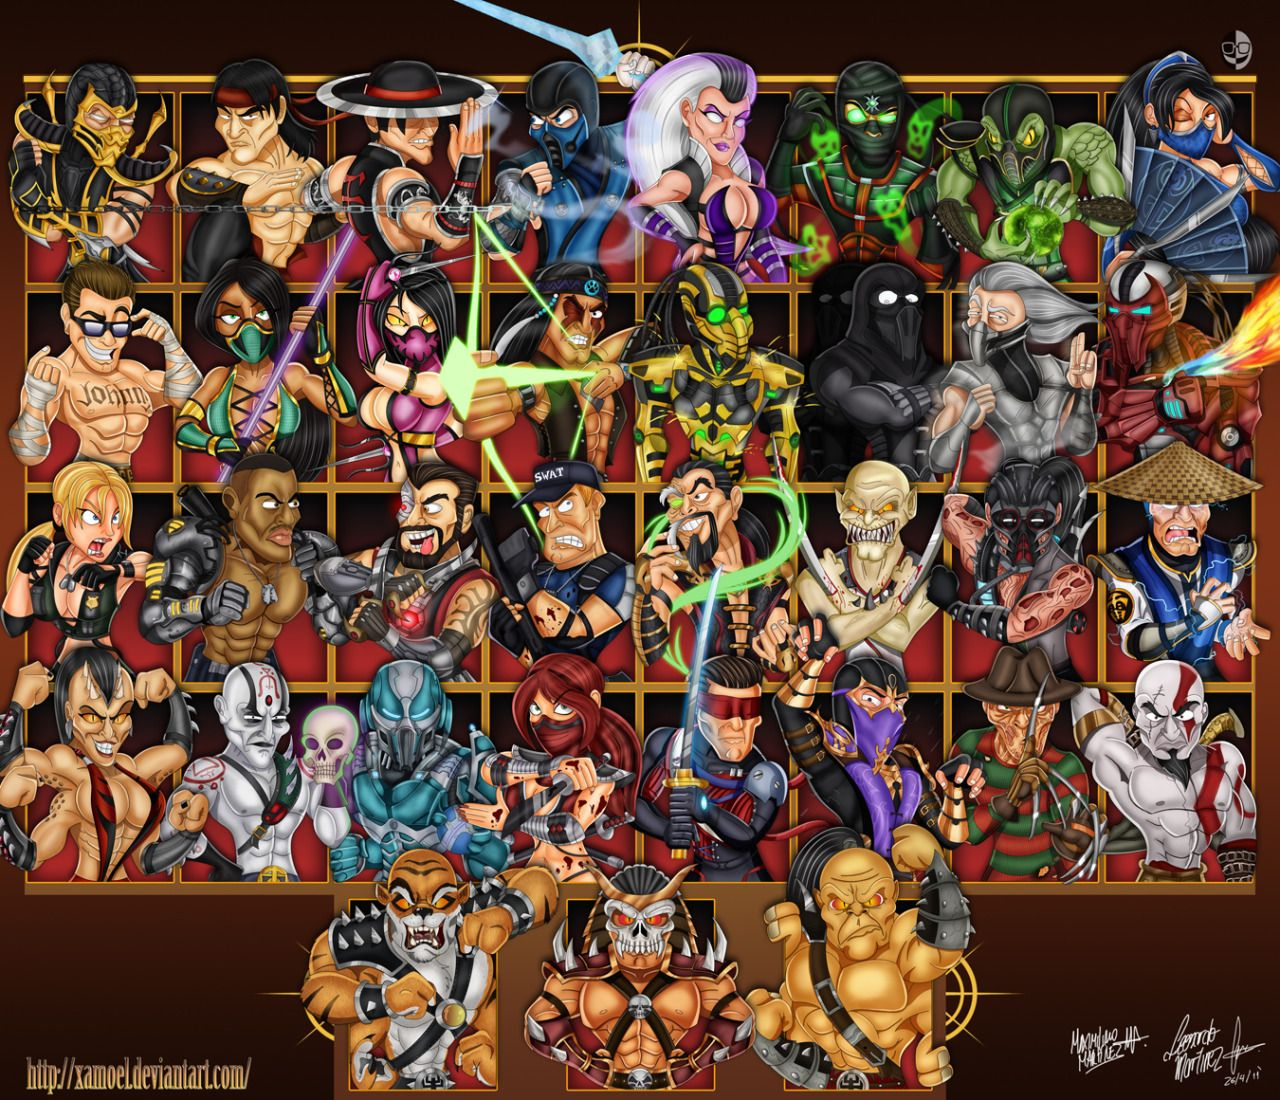 Mortal Kombat 9 Cast | Video Games | Mortal kombat 9, Mortal